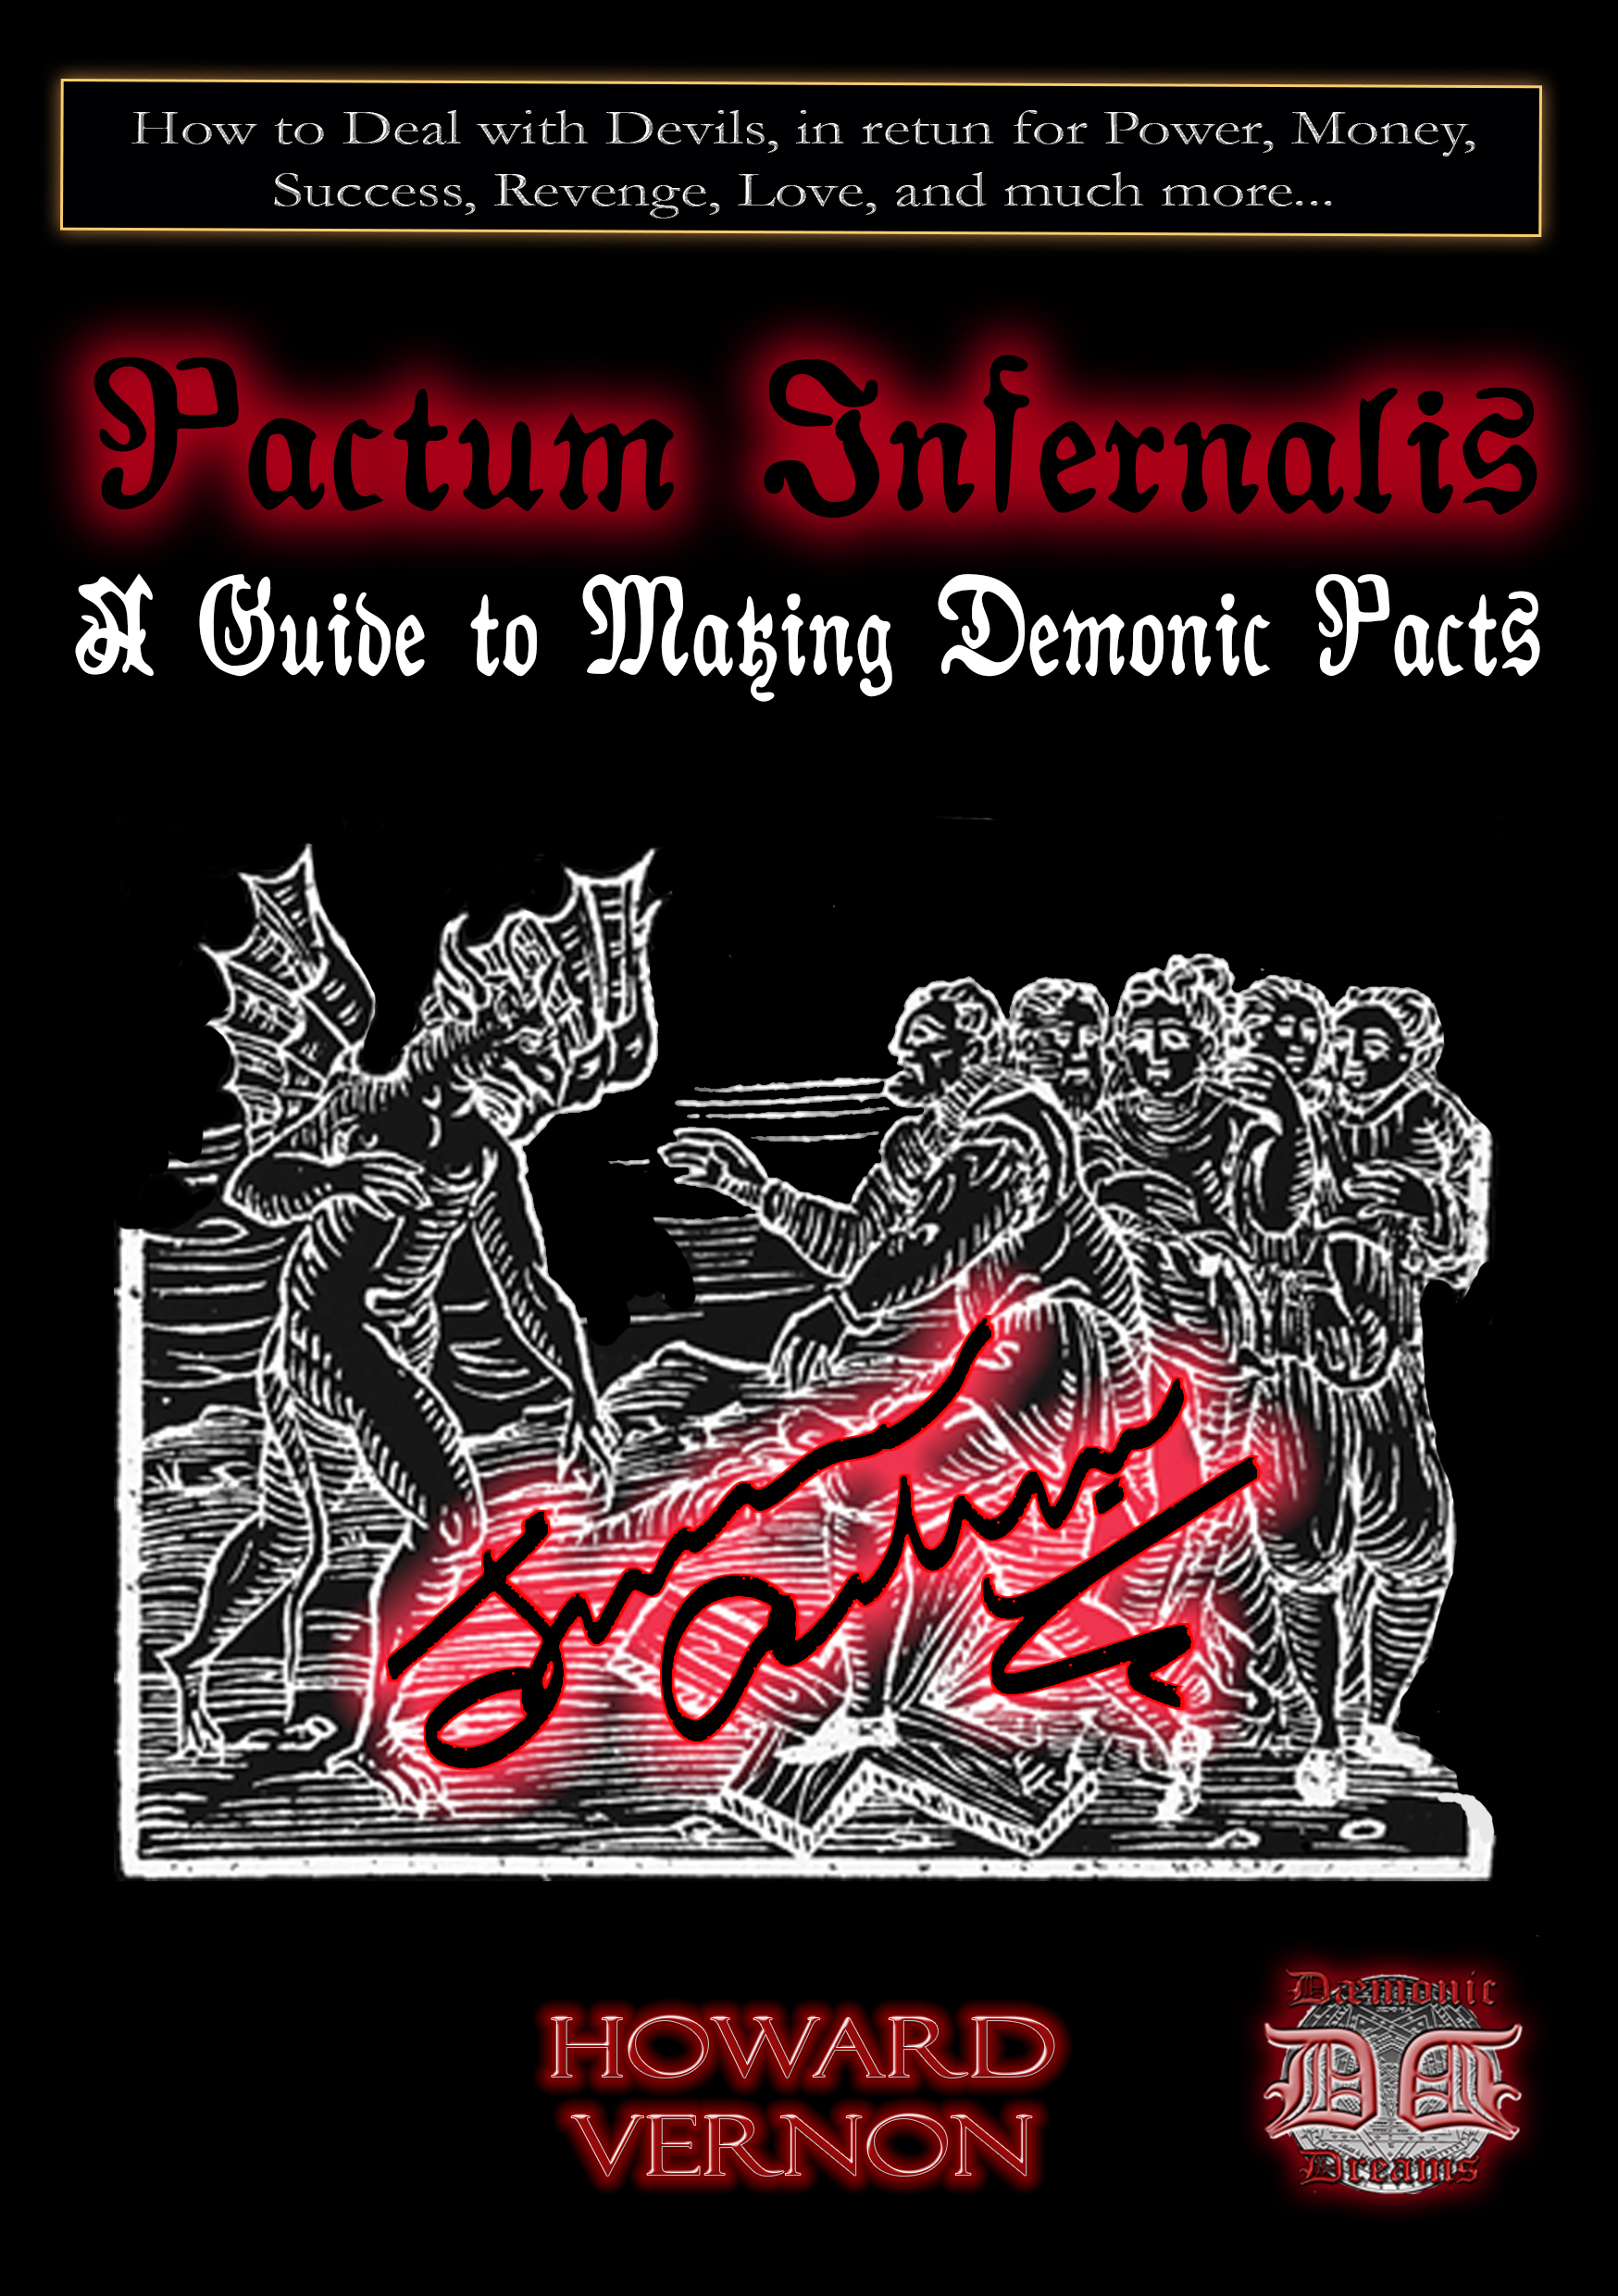 PACTUM INFERNALIS by Howard Vernon